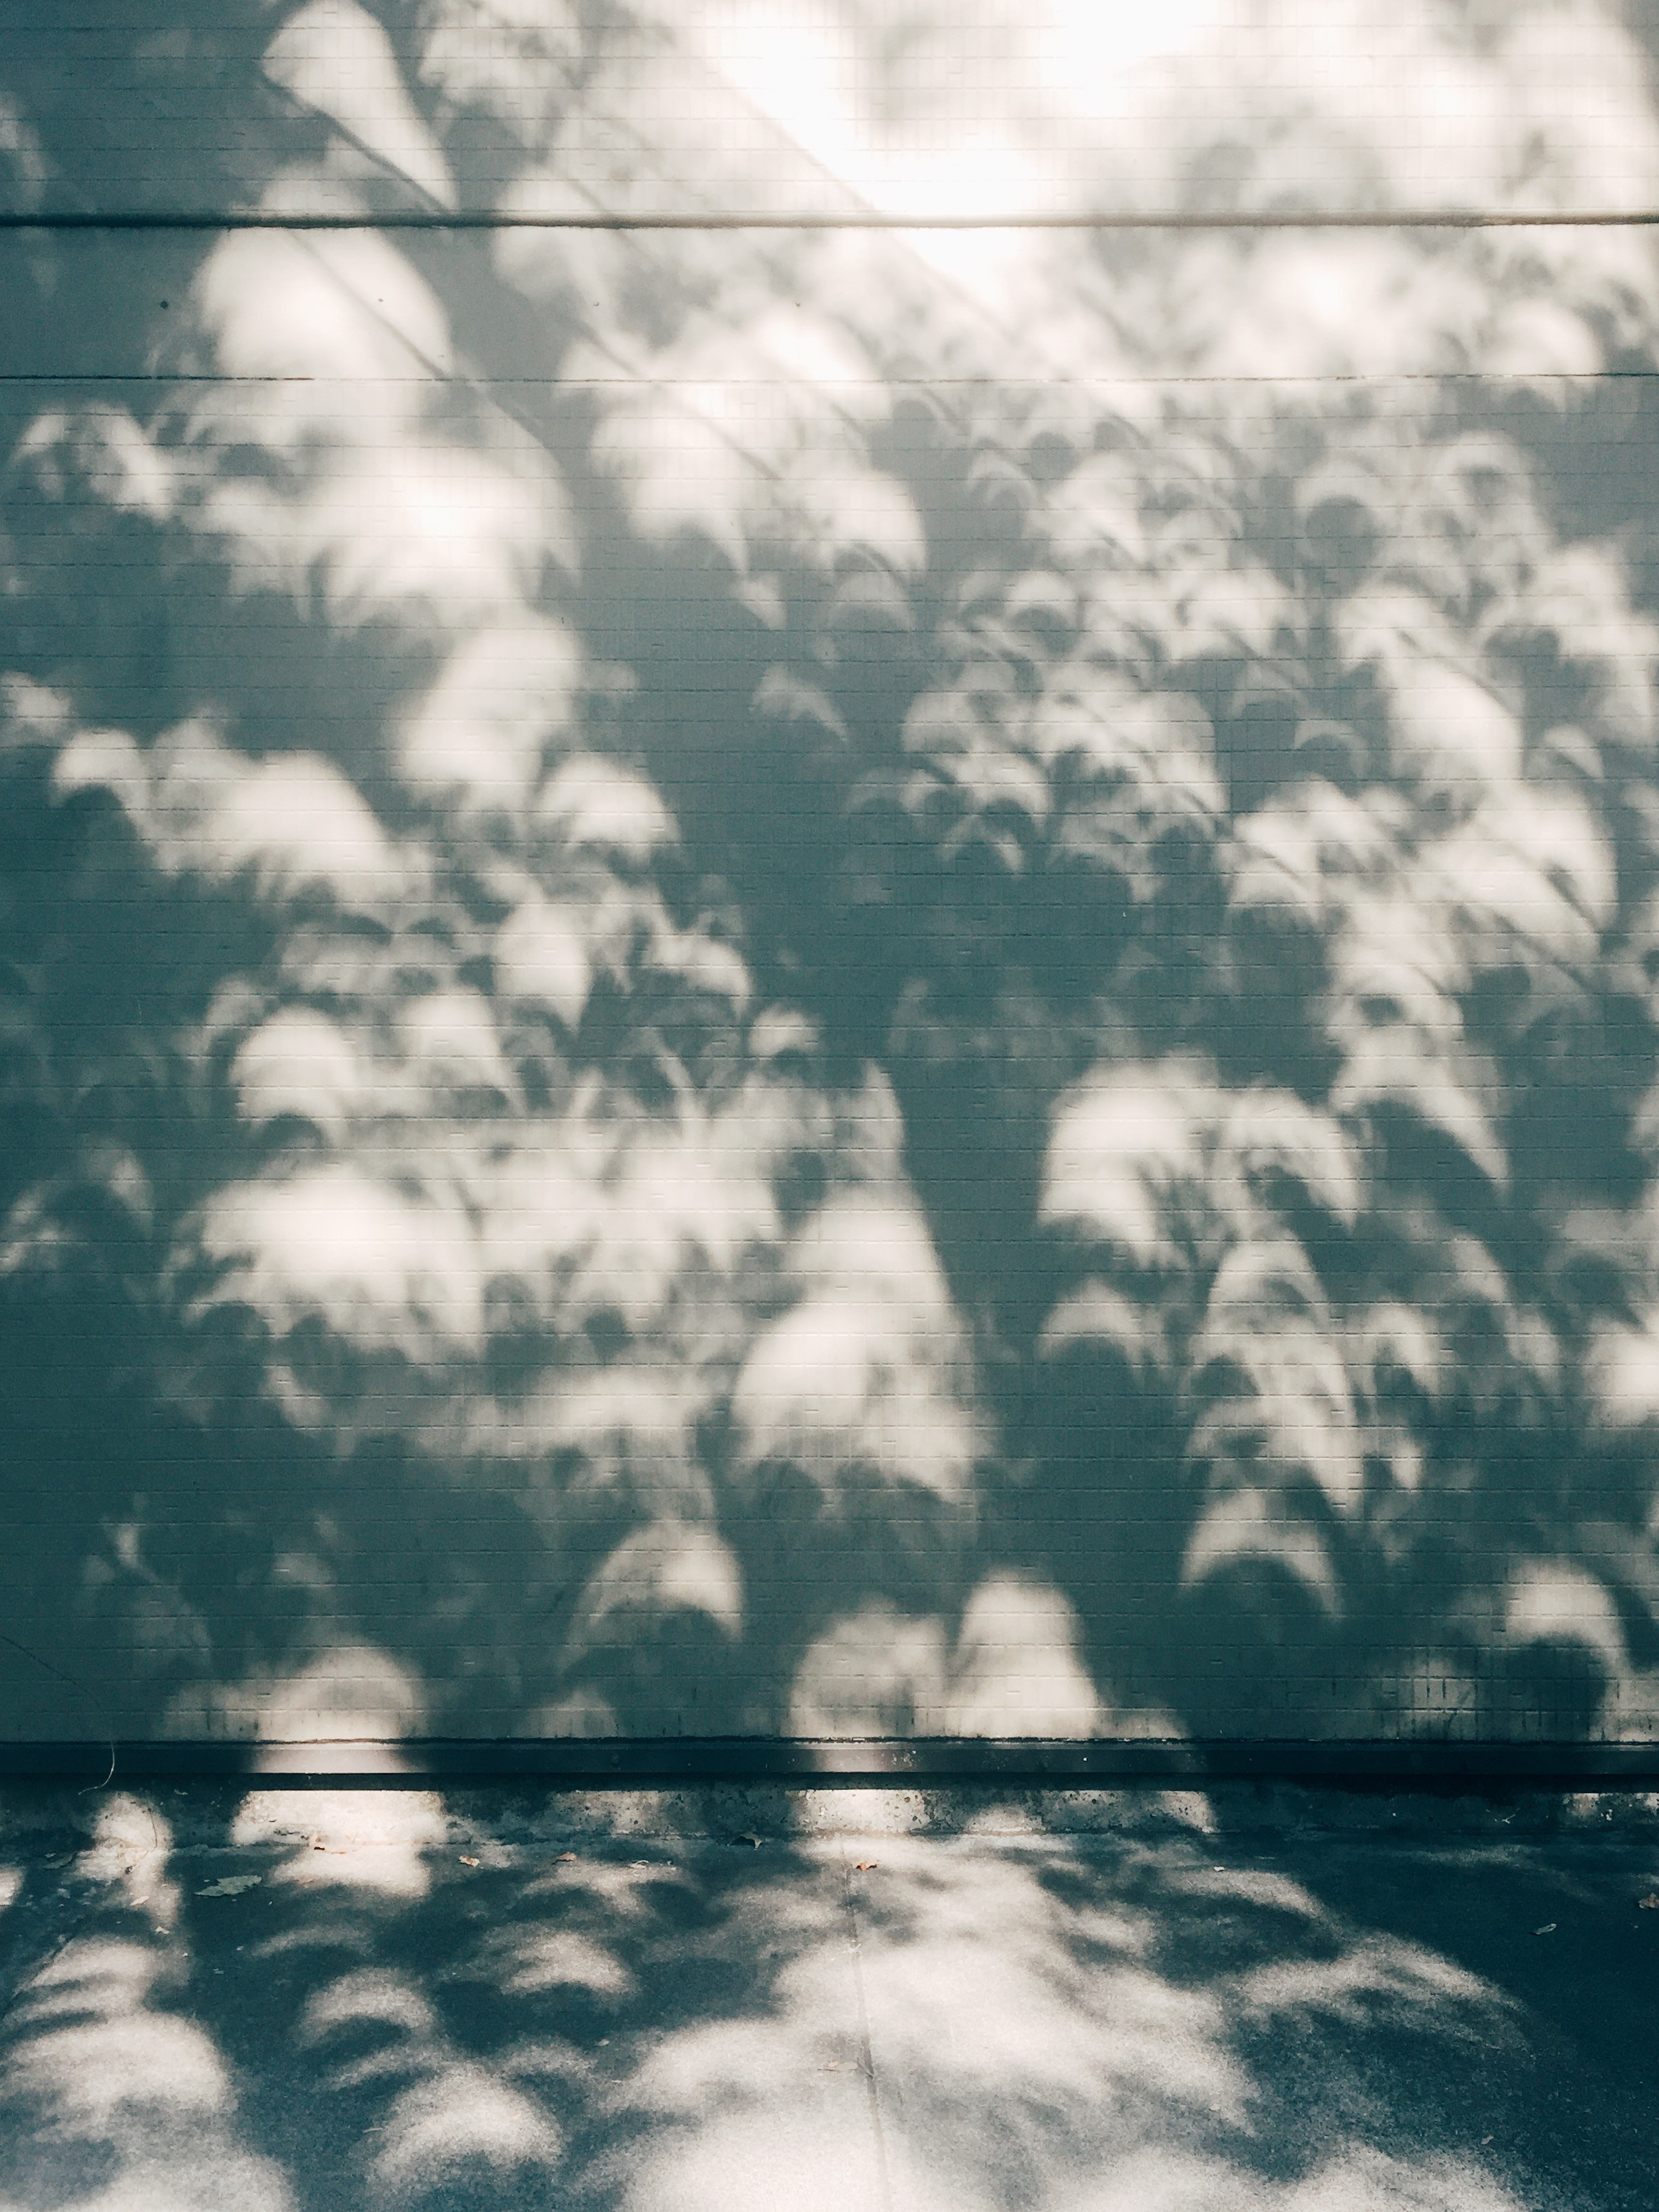 solar eclipse shadows / alex hood 2017